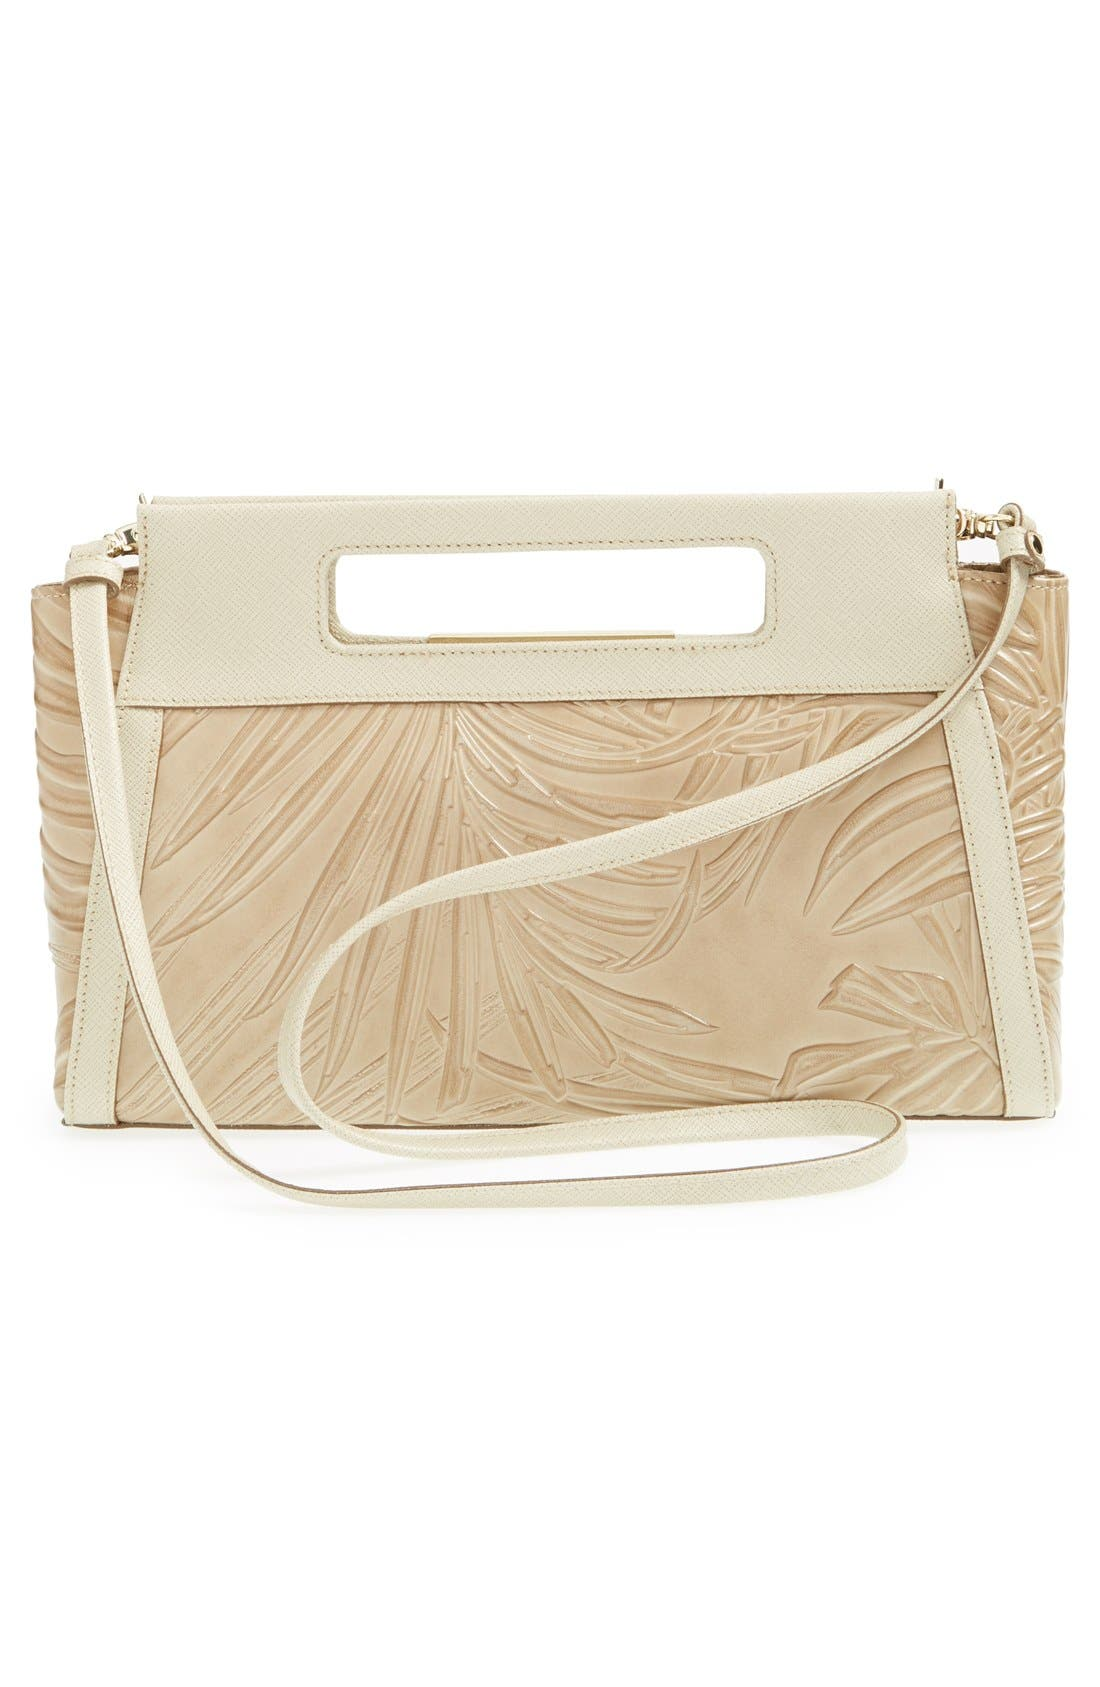 Alternate Image 3  - Brahmin 'Lenox' Embossed Leather Clutch